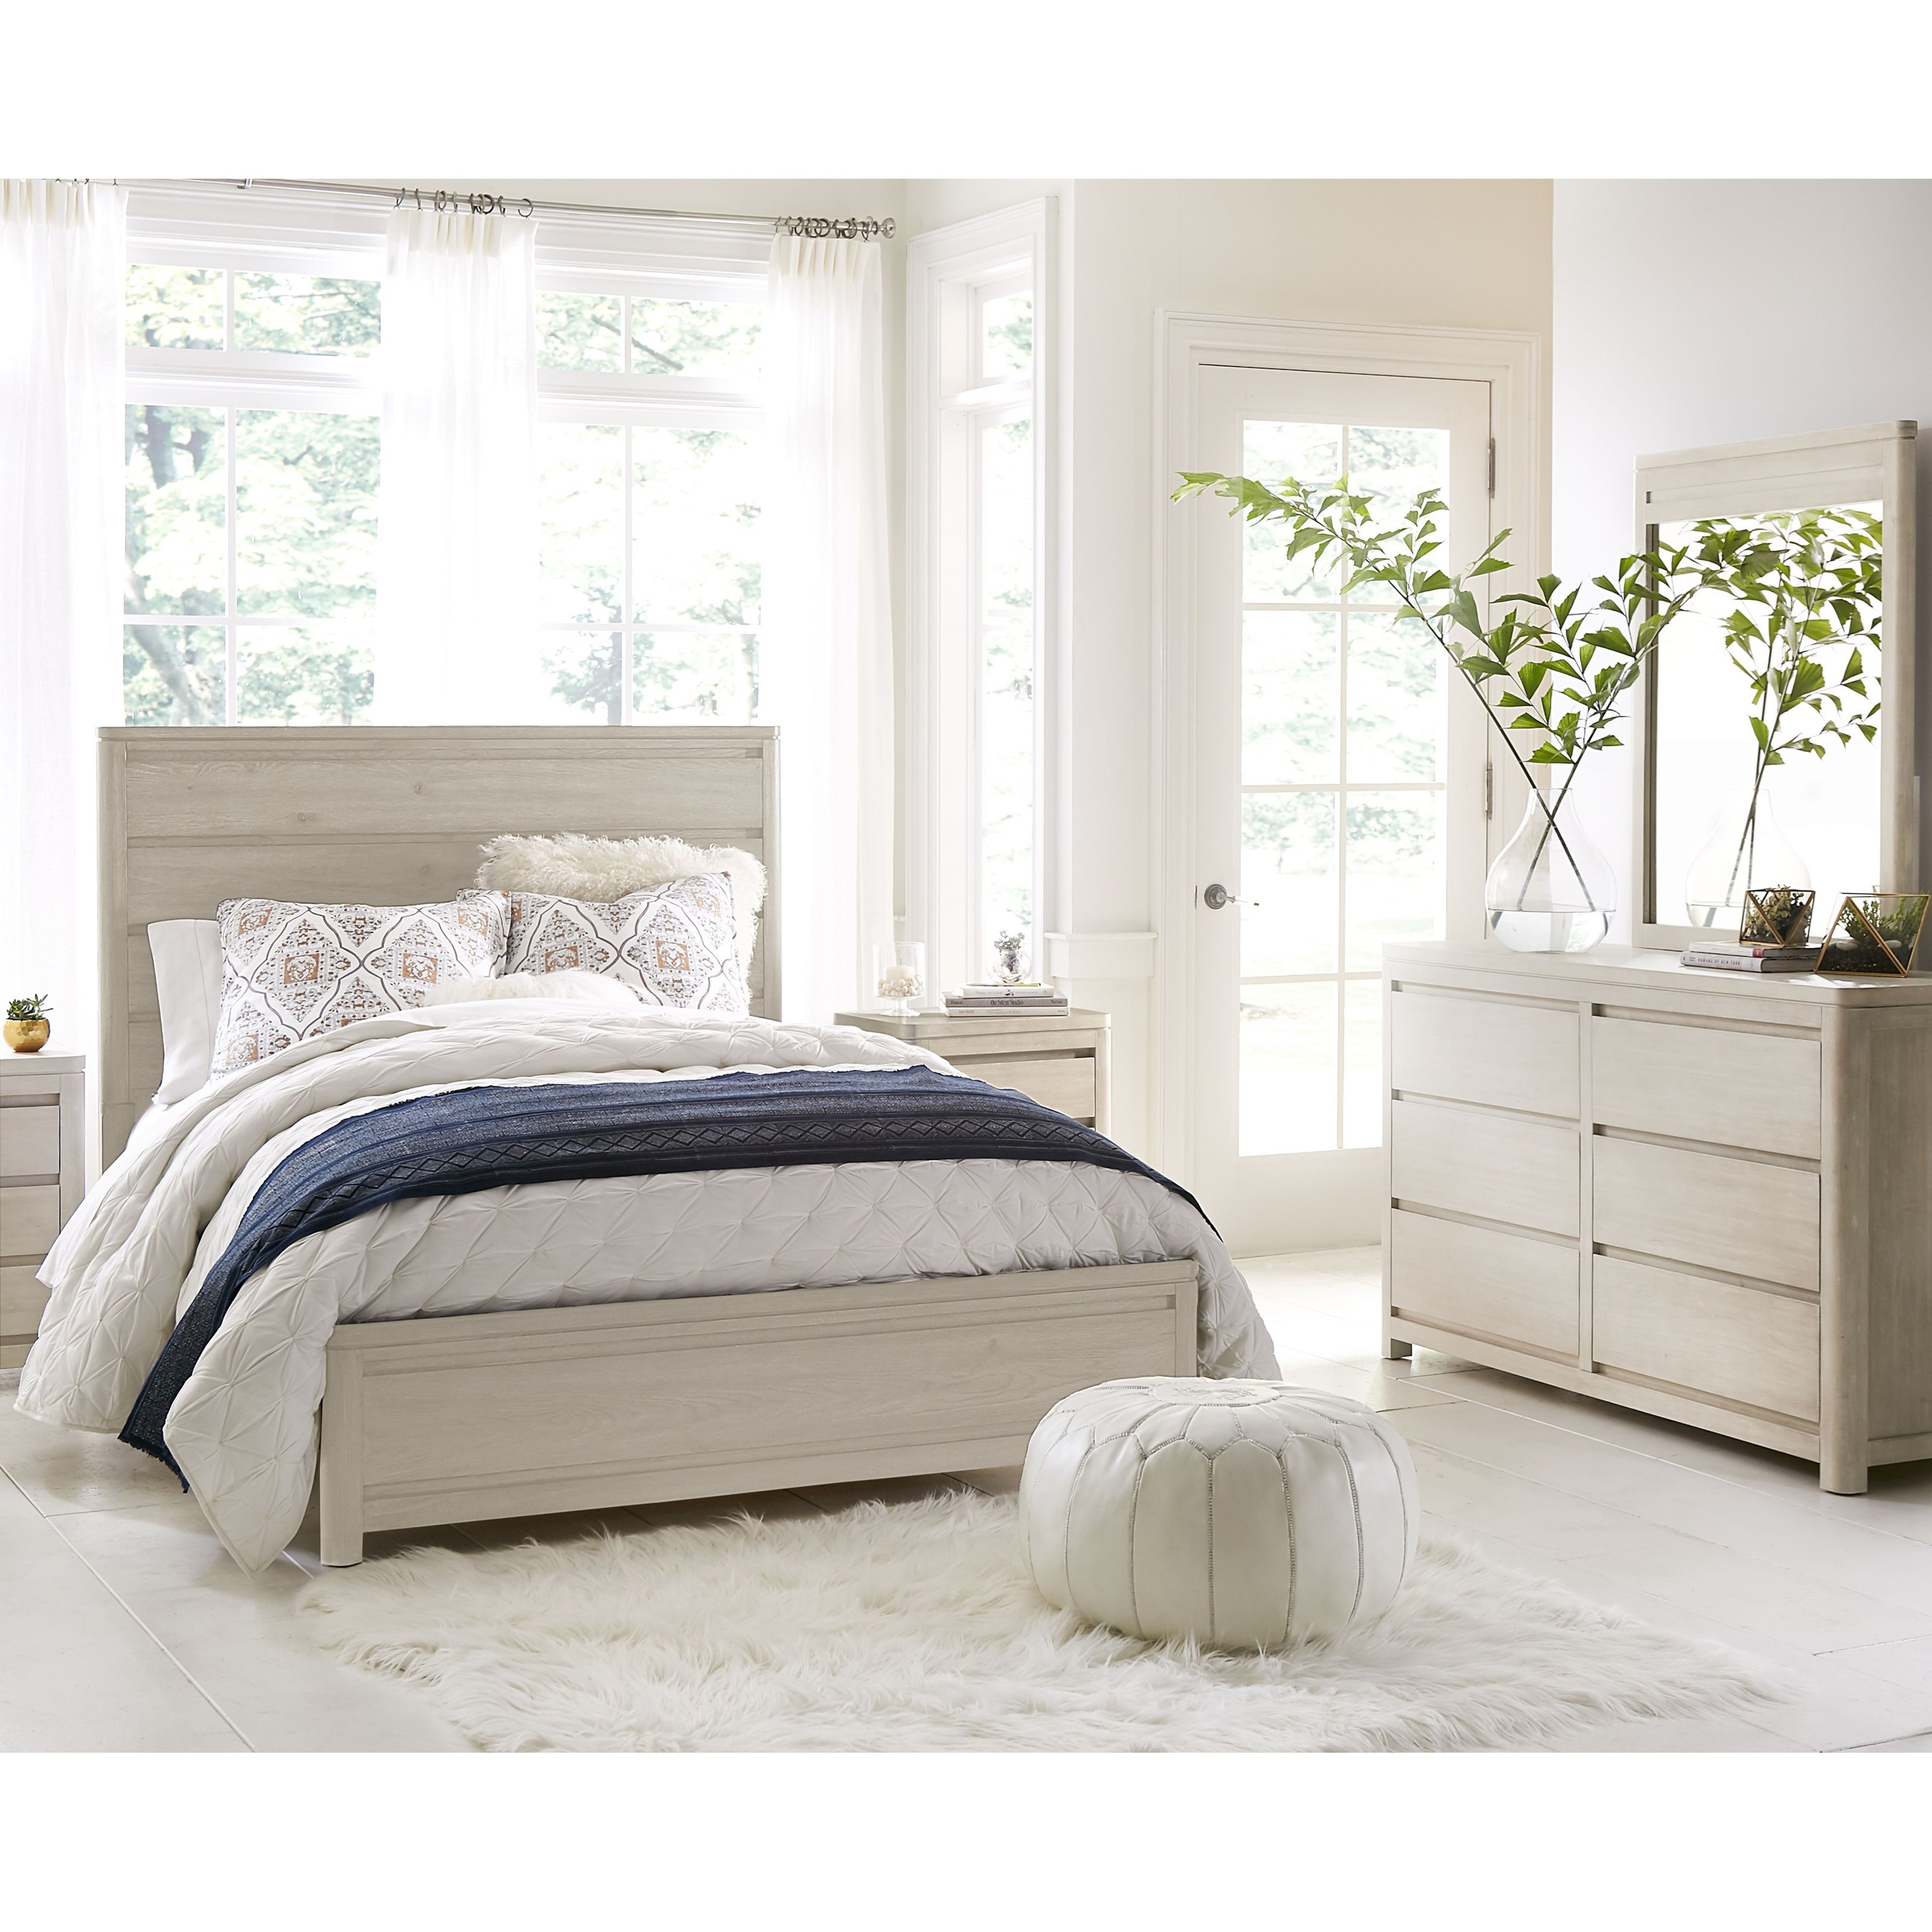 Legacy Classic Kids Indio by Wendy Bellissimo Queen Bedroom Group ...